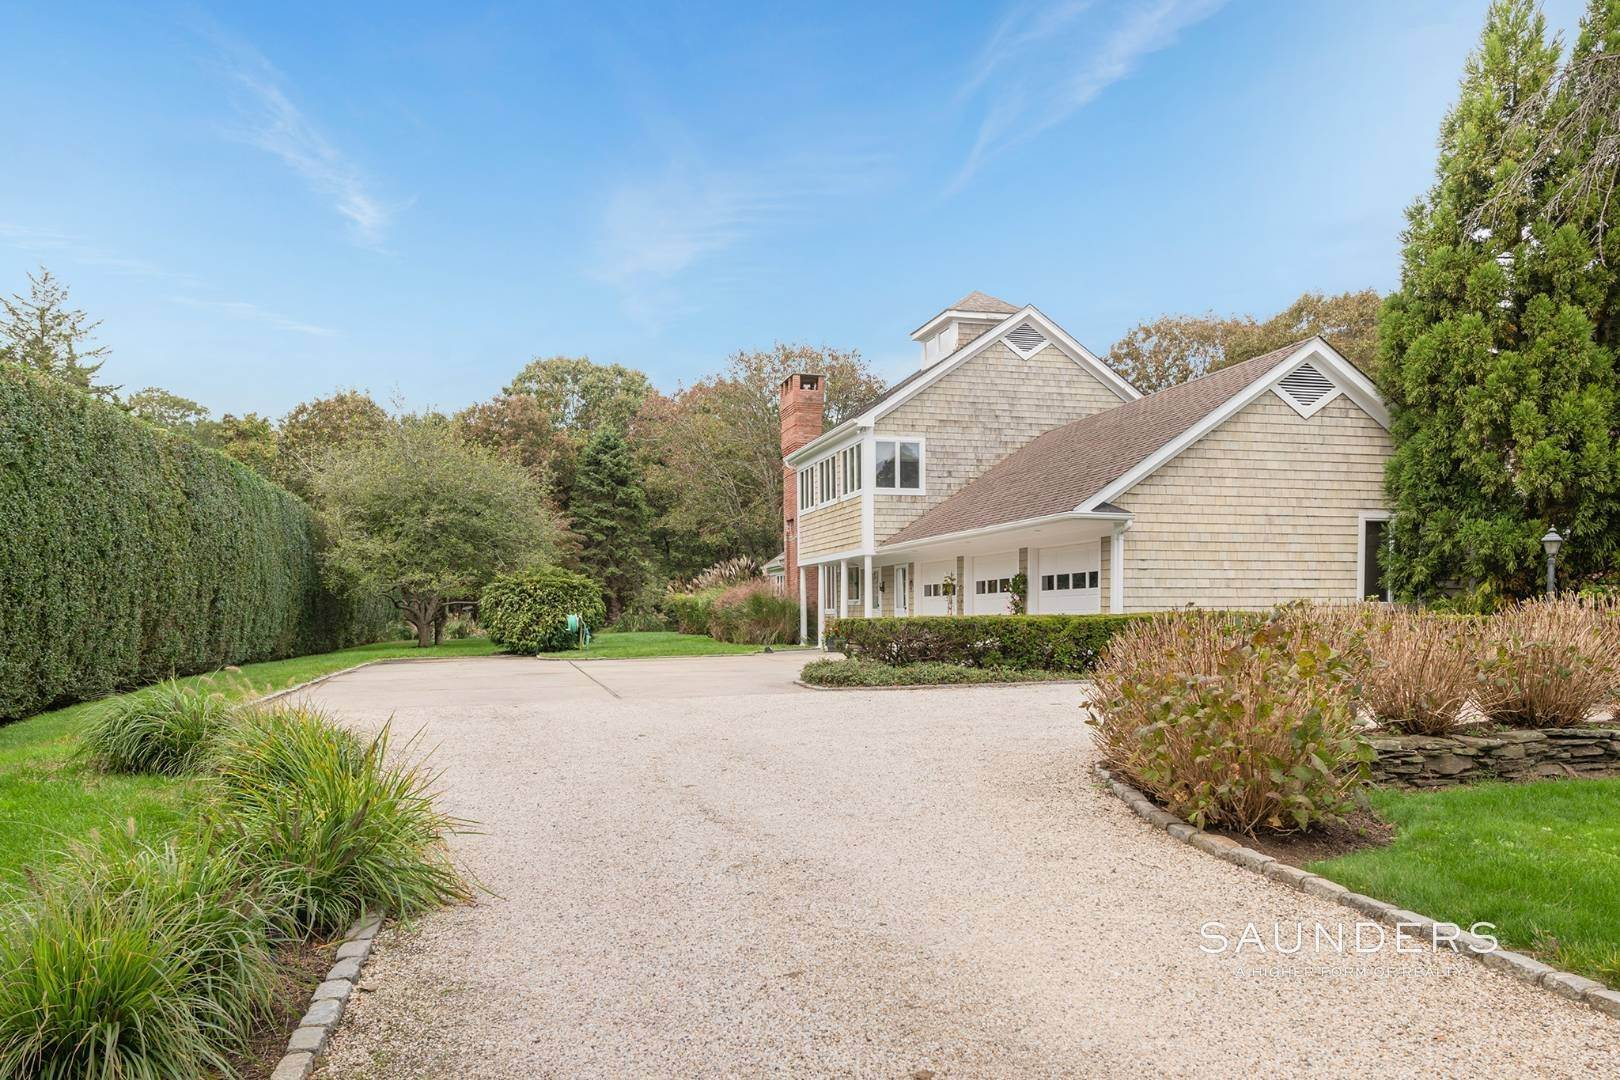 2. Single Family Homes for Sale at Prime 2.8 Acres In Sagaponack Village W/ Barn & Room For Tennis 44 Greenleaf Lane, Sagaponack Village, Southampton Town, NY 11962